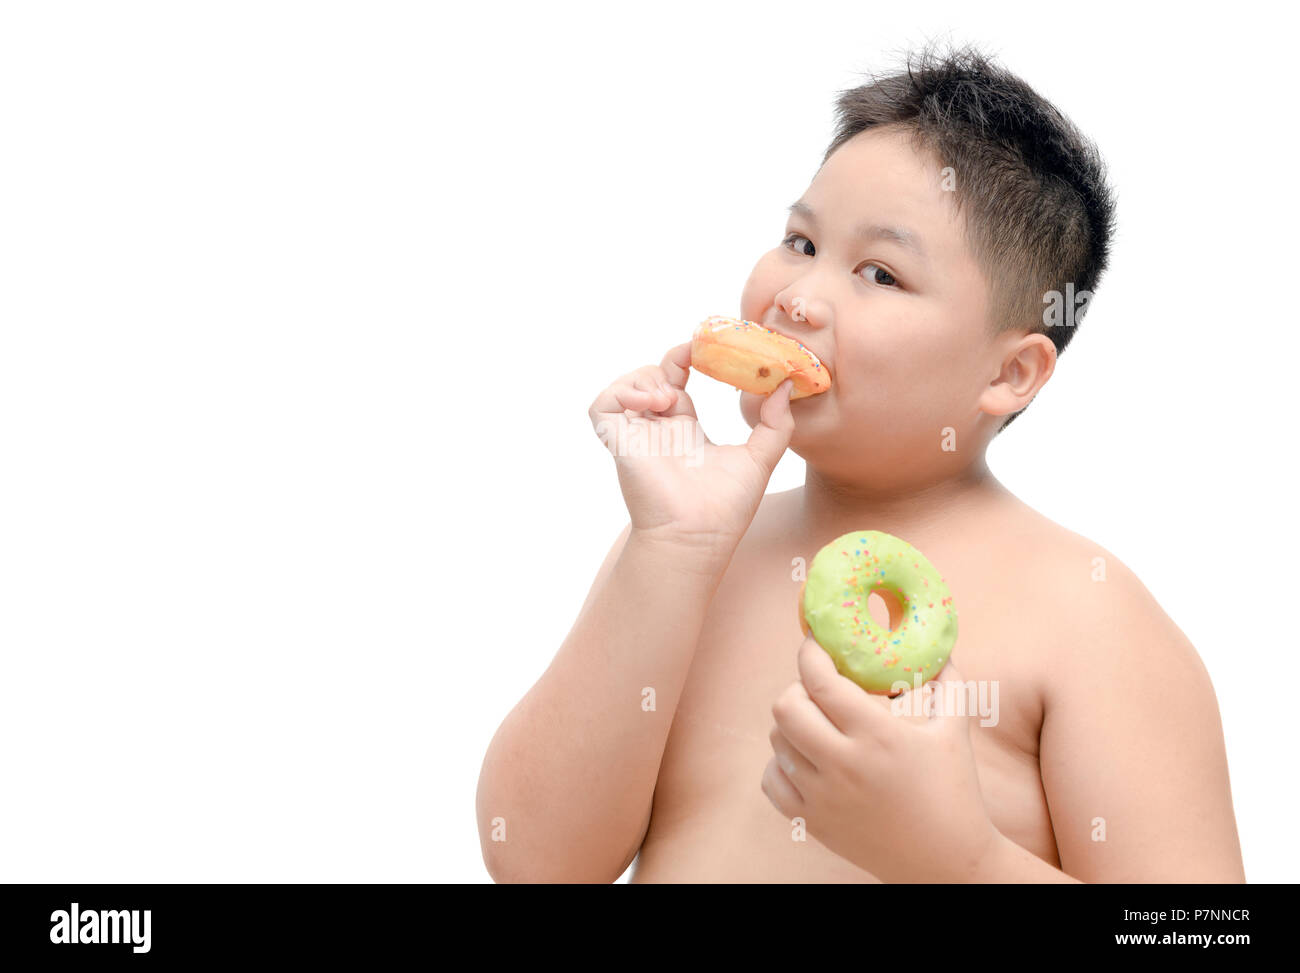 Obese fat boy is eating donut isolated on white background, junk food and dieting concept - Stock Image